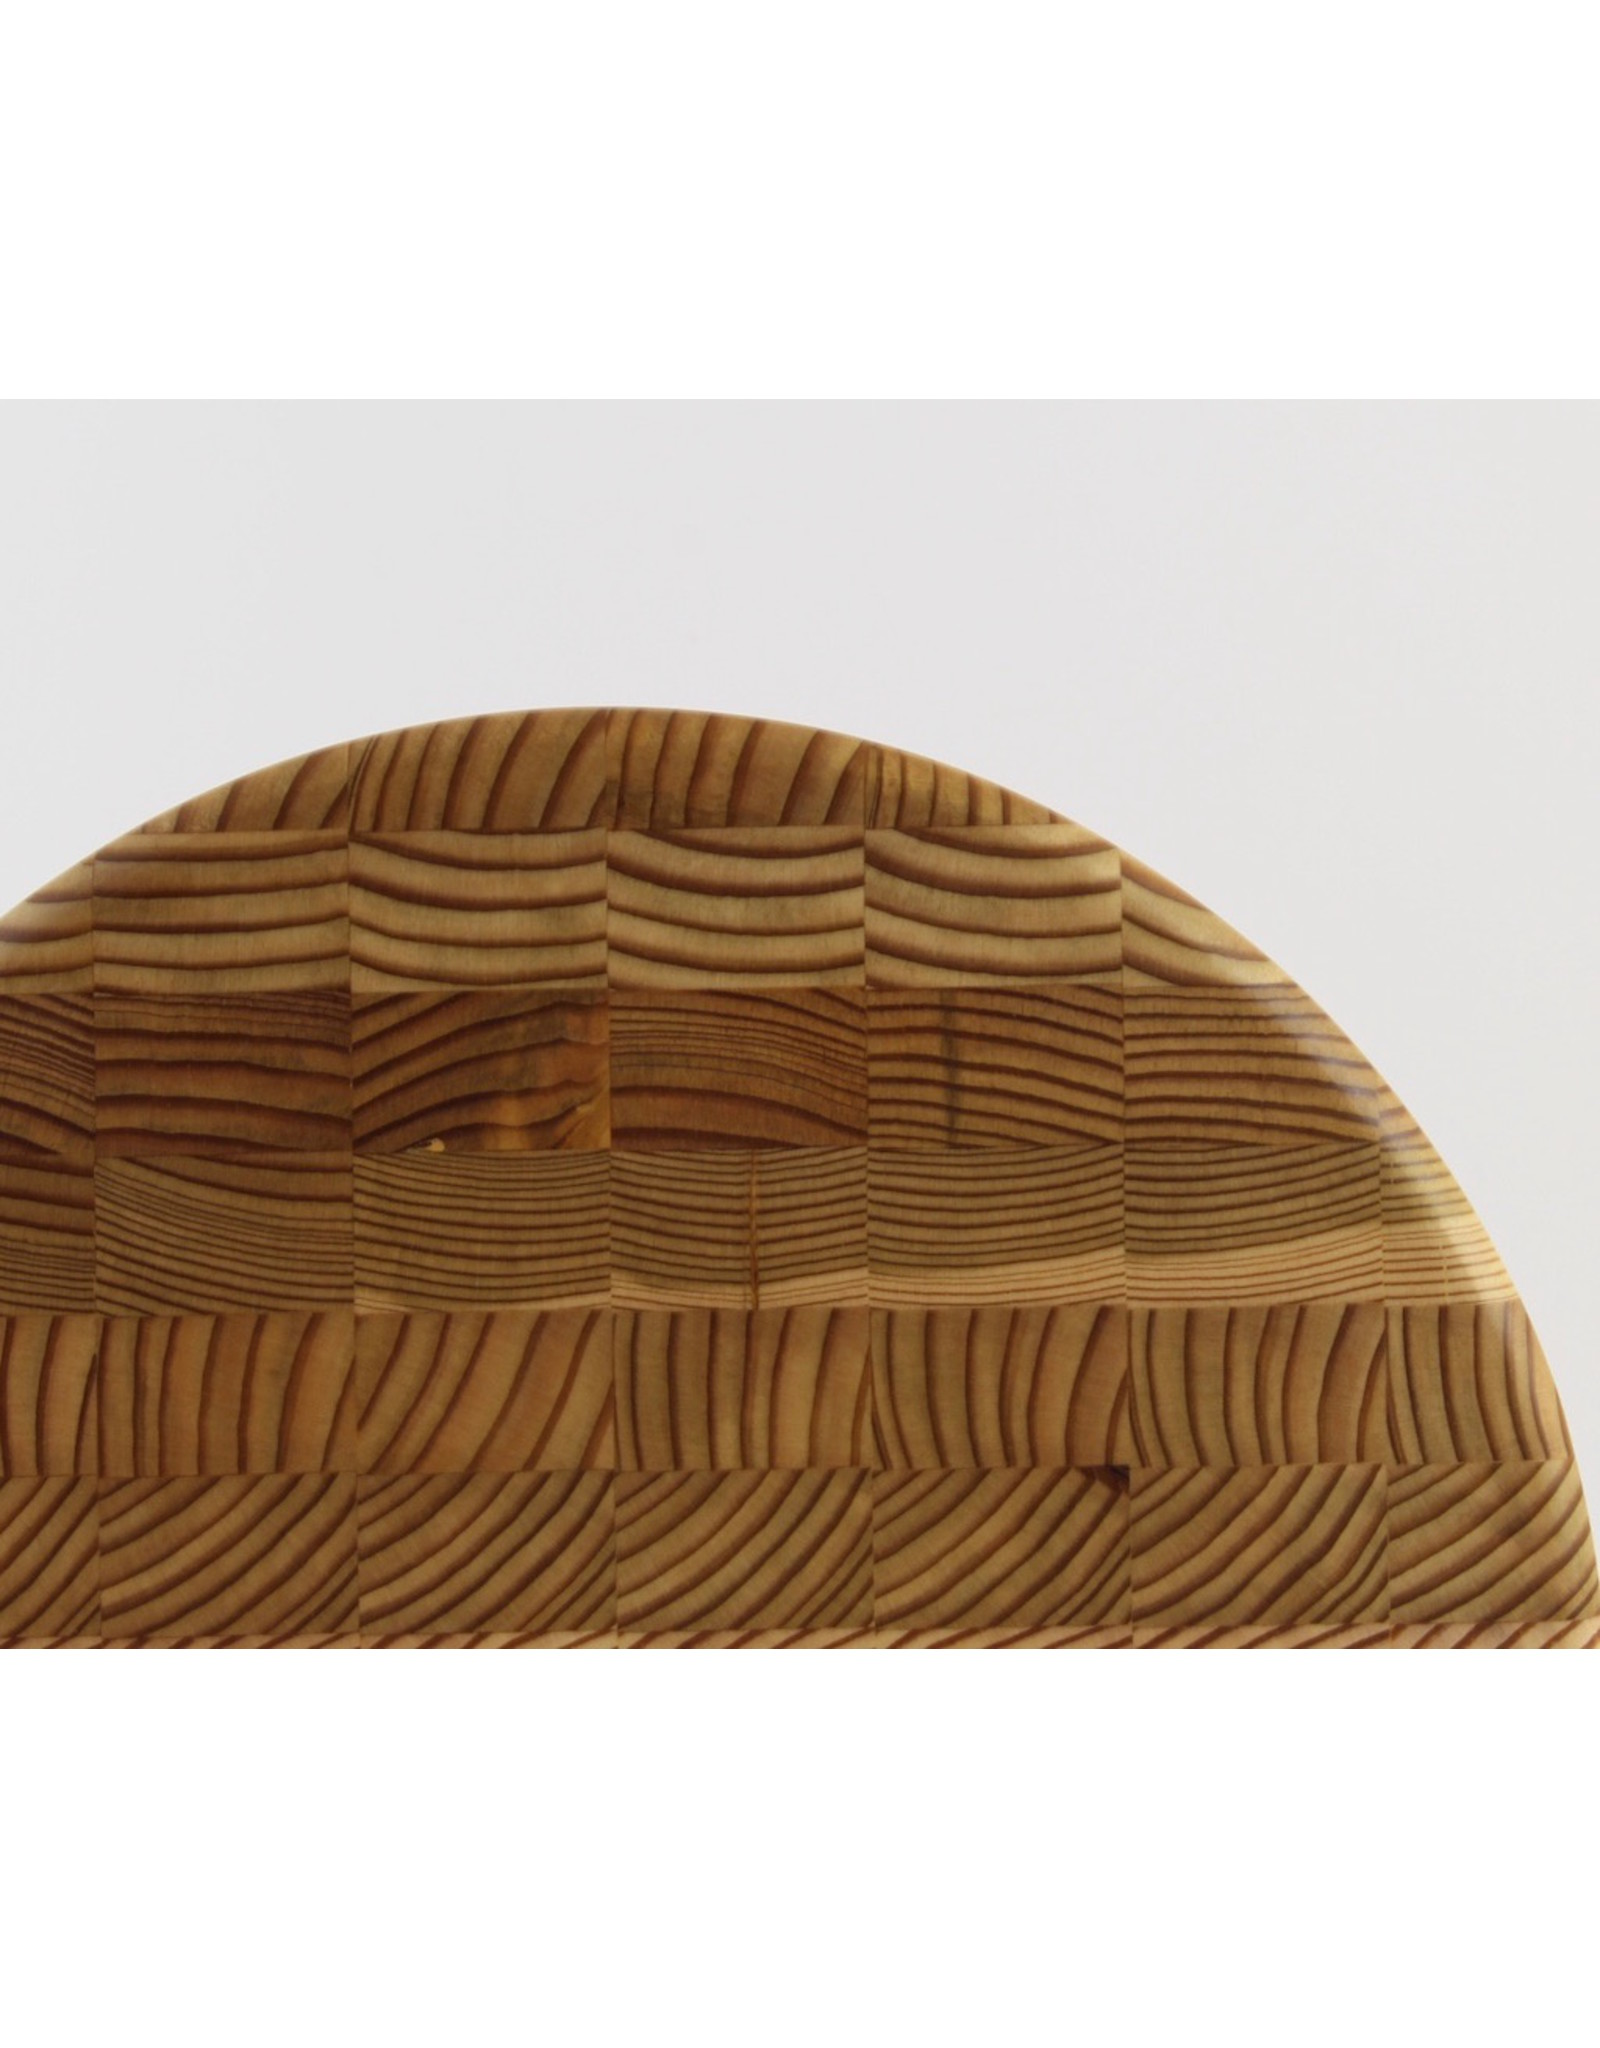 Larch Wood Canada Round Cheese Board by Larch Wood